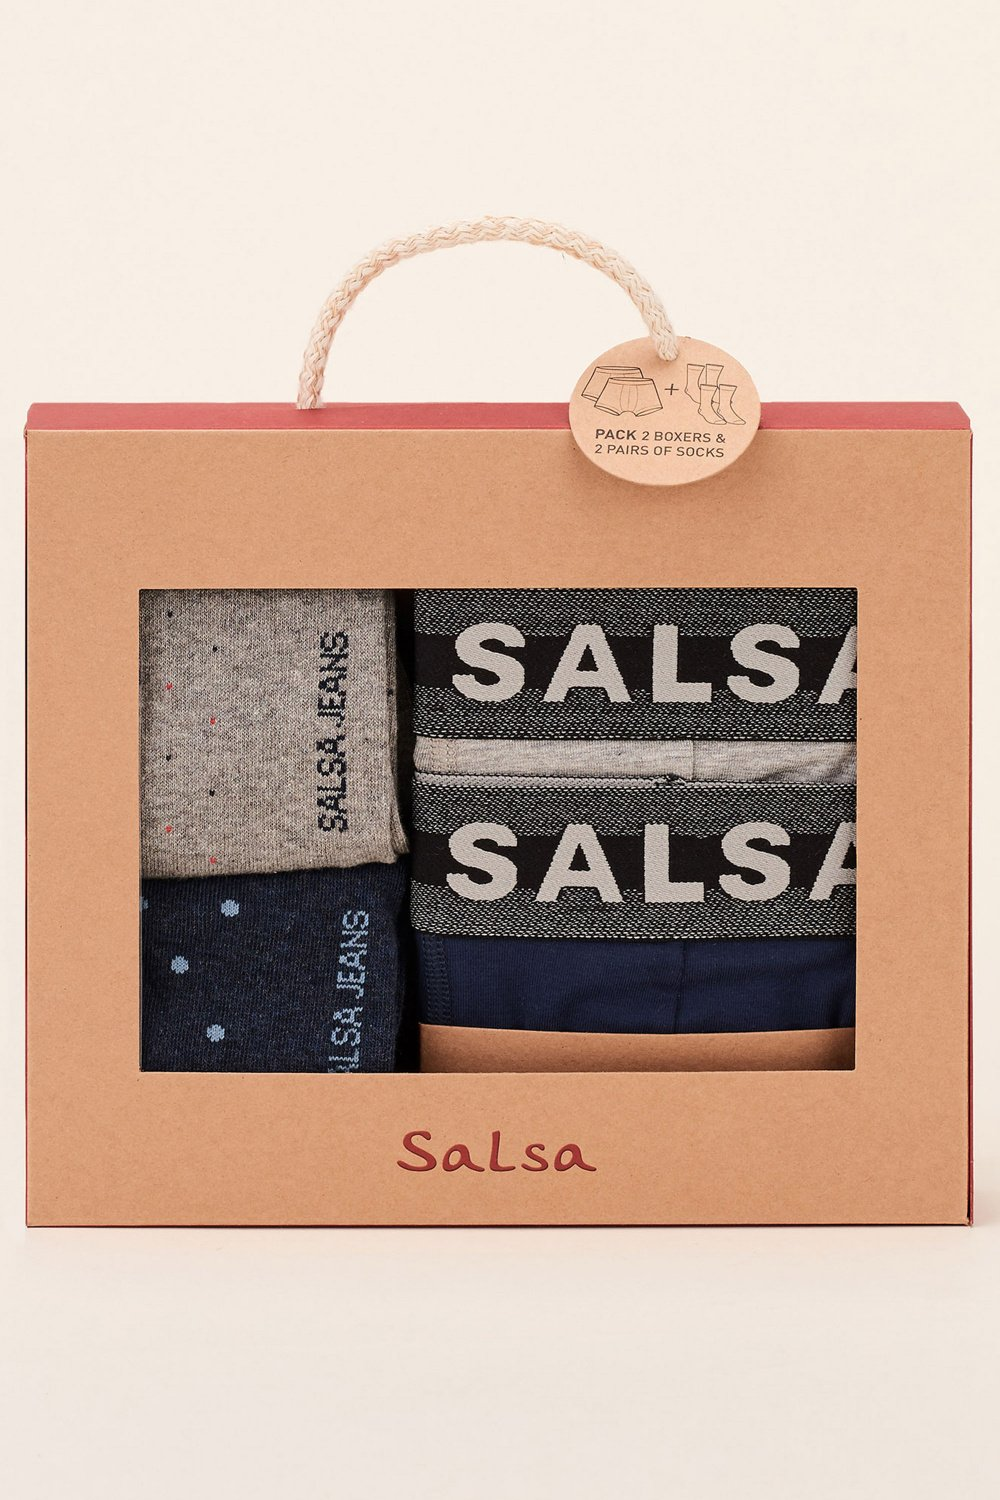 Pack 2 boxers and 2 socks - Salsa